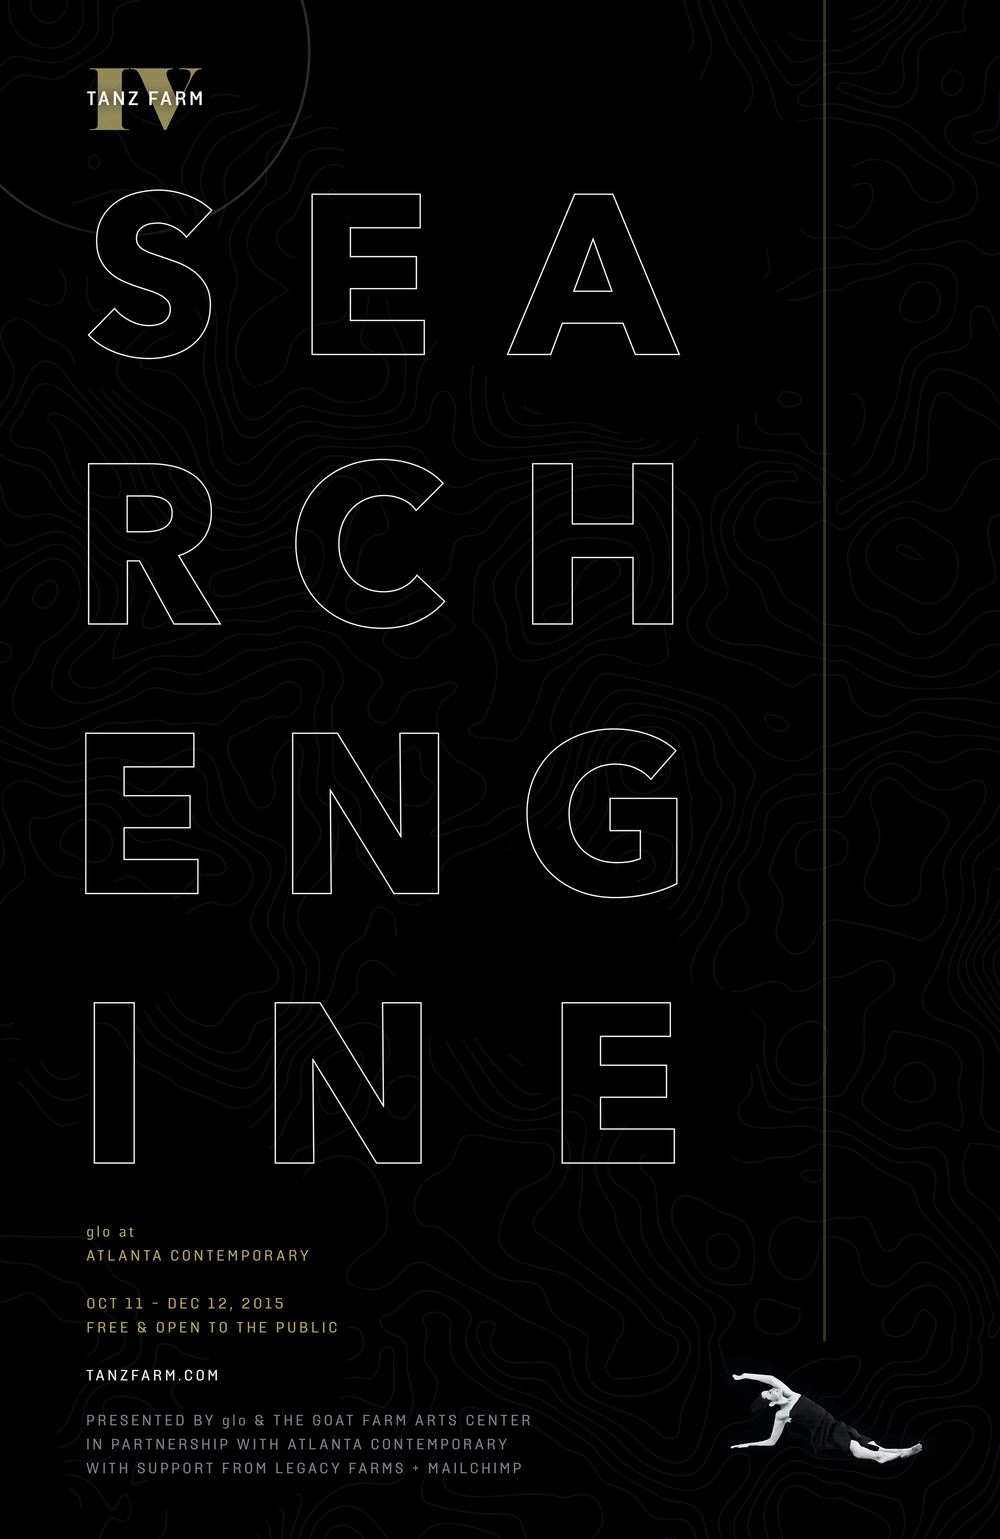 TF_IVSearchEngine_Poster.png